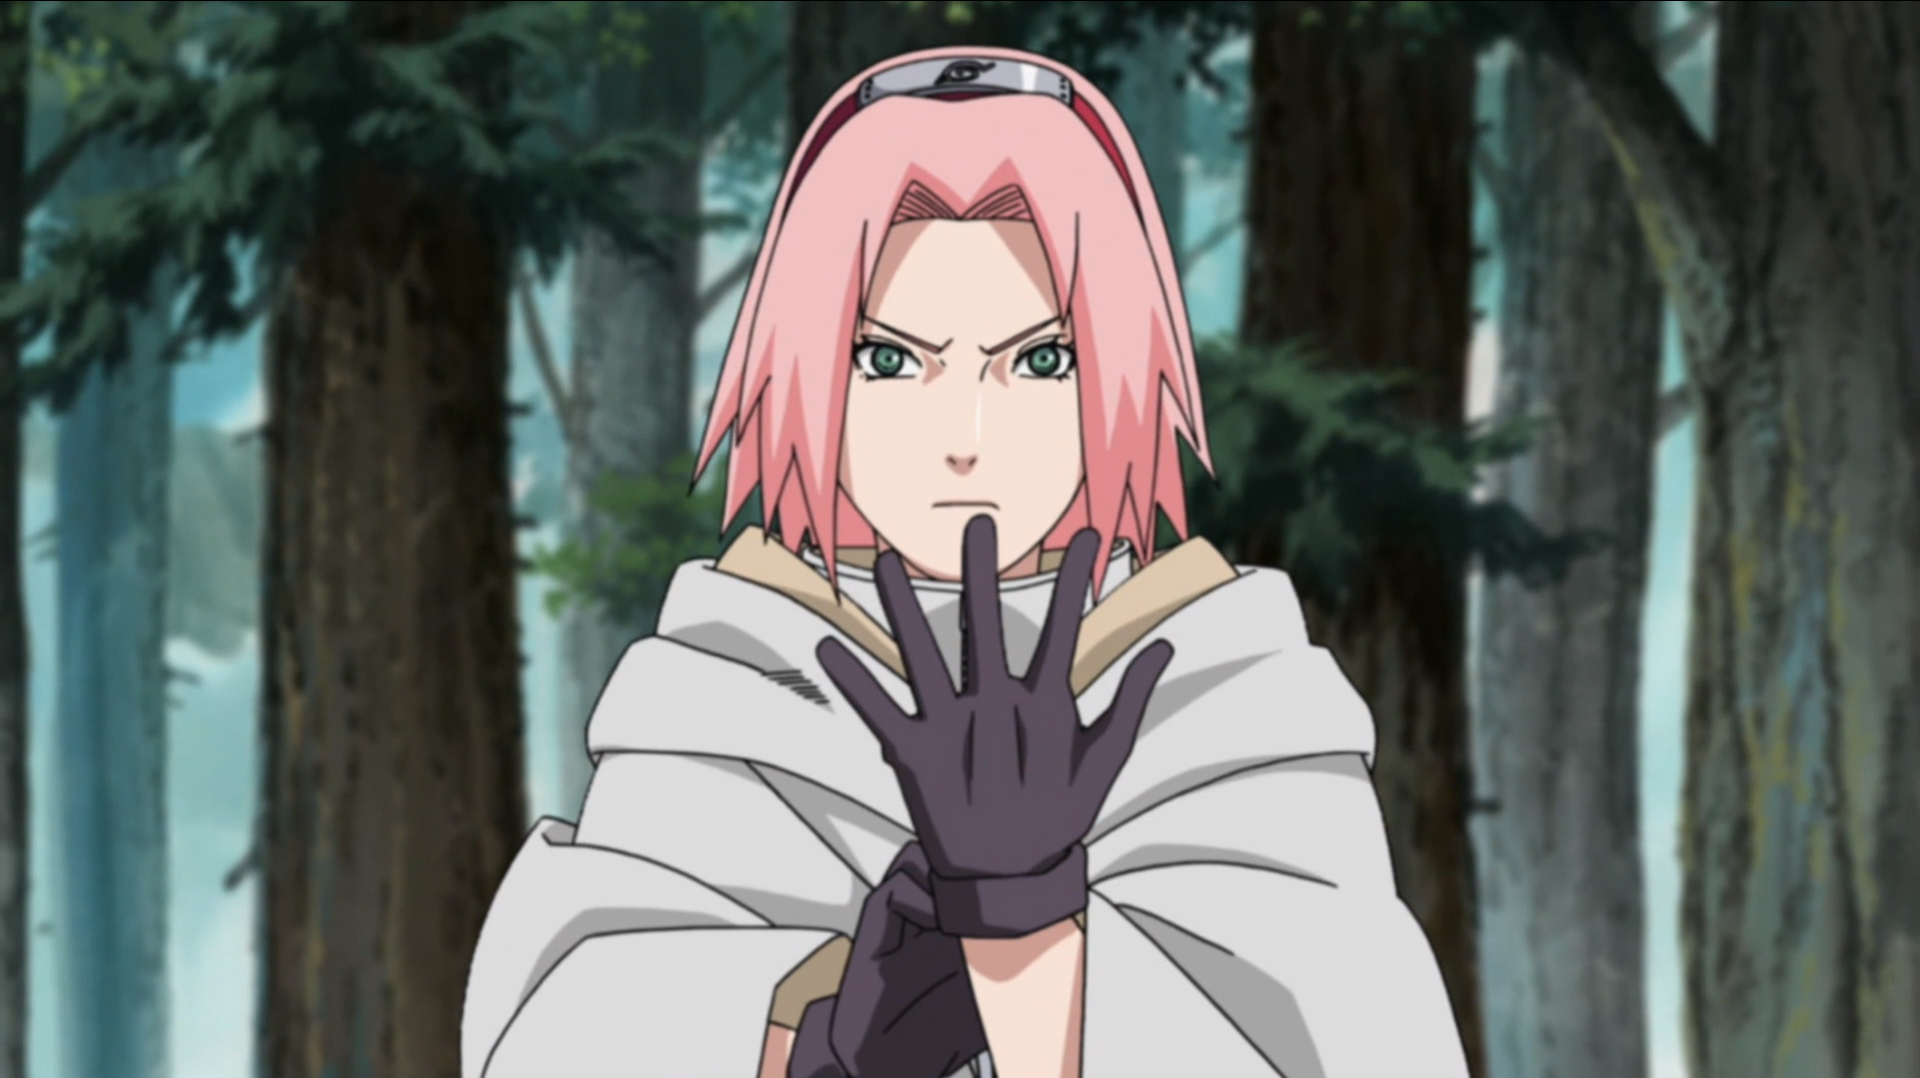 Sakura 39 s resolve narutopedia fandom powered by wikia - Image de narouto ...